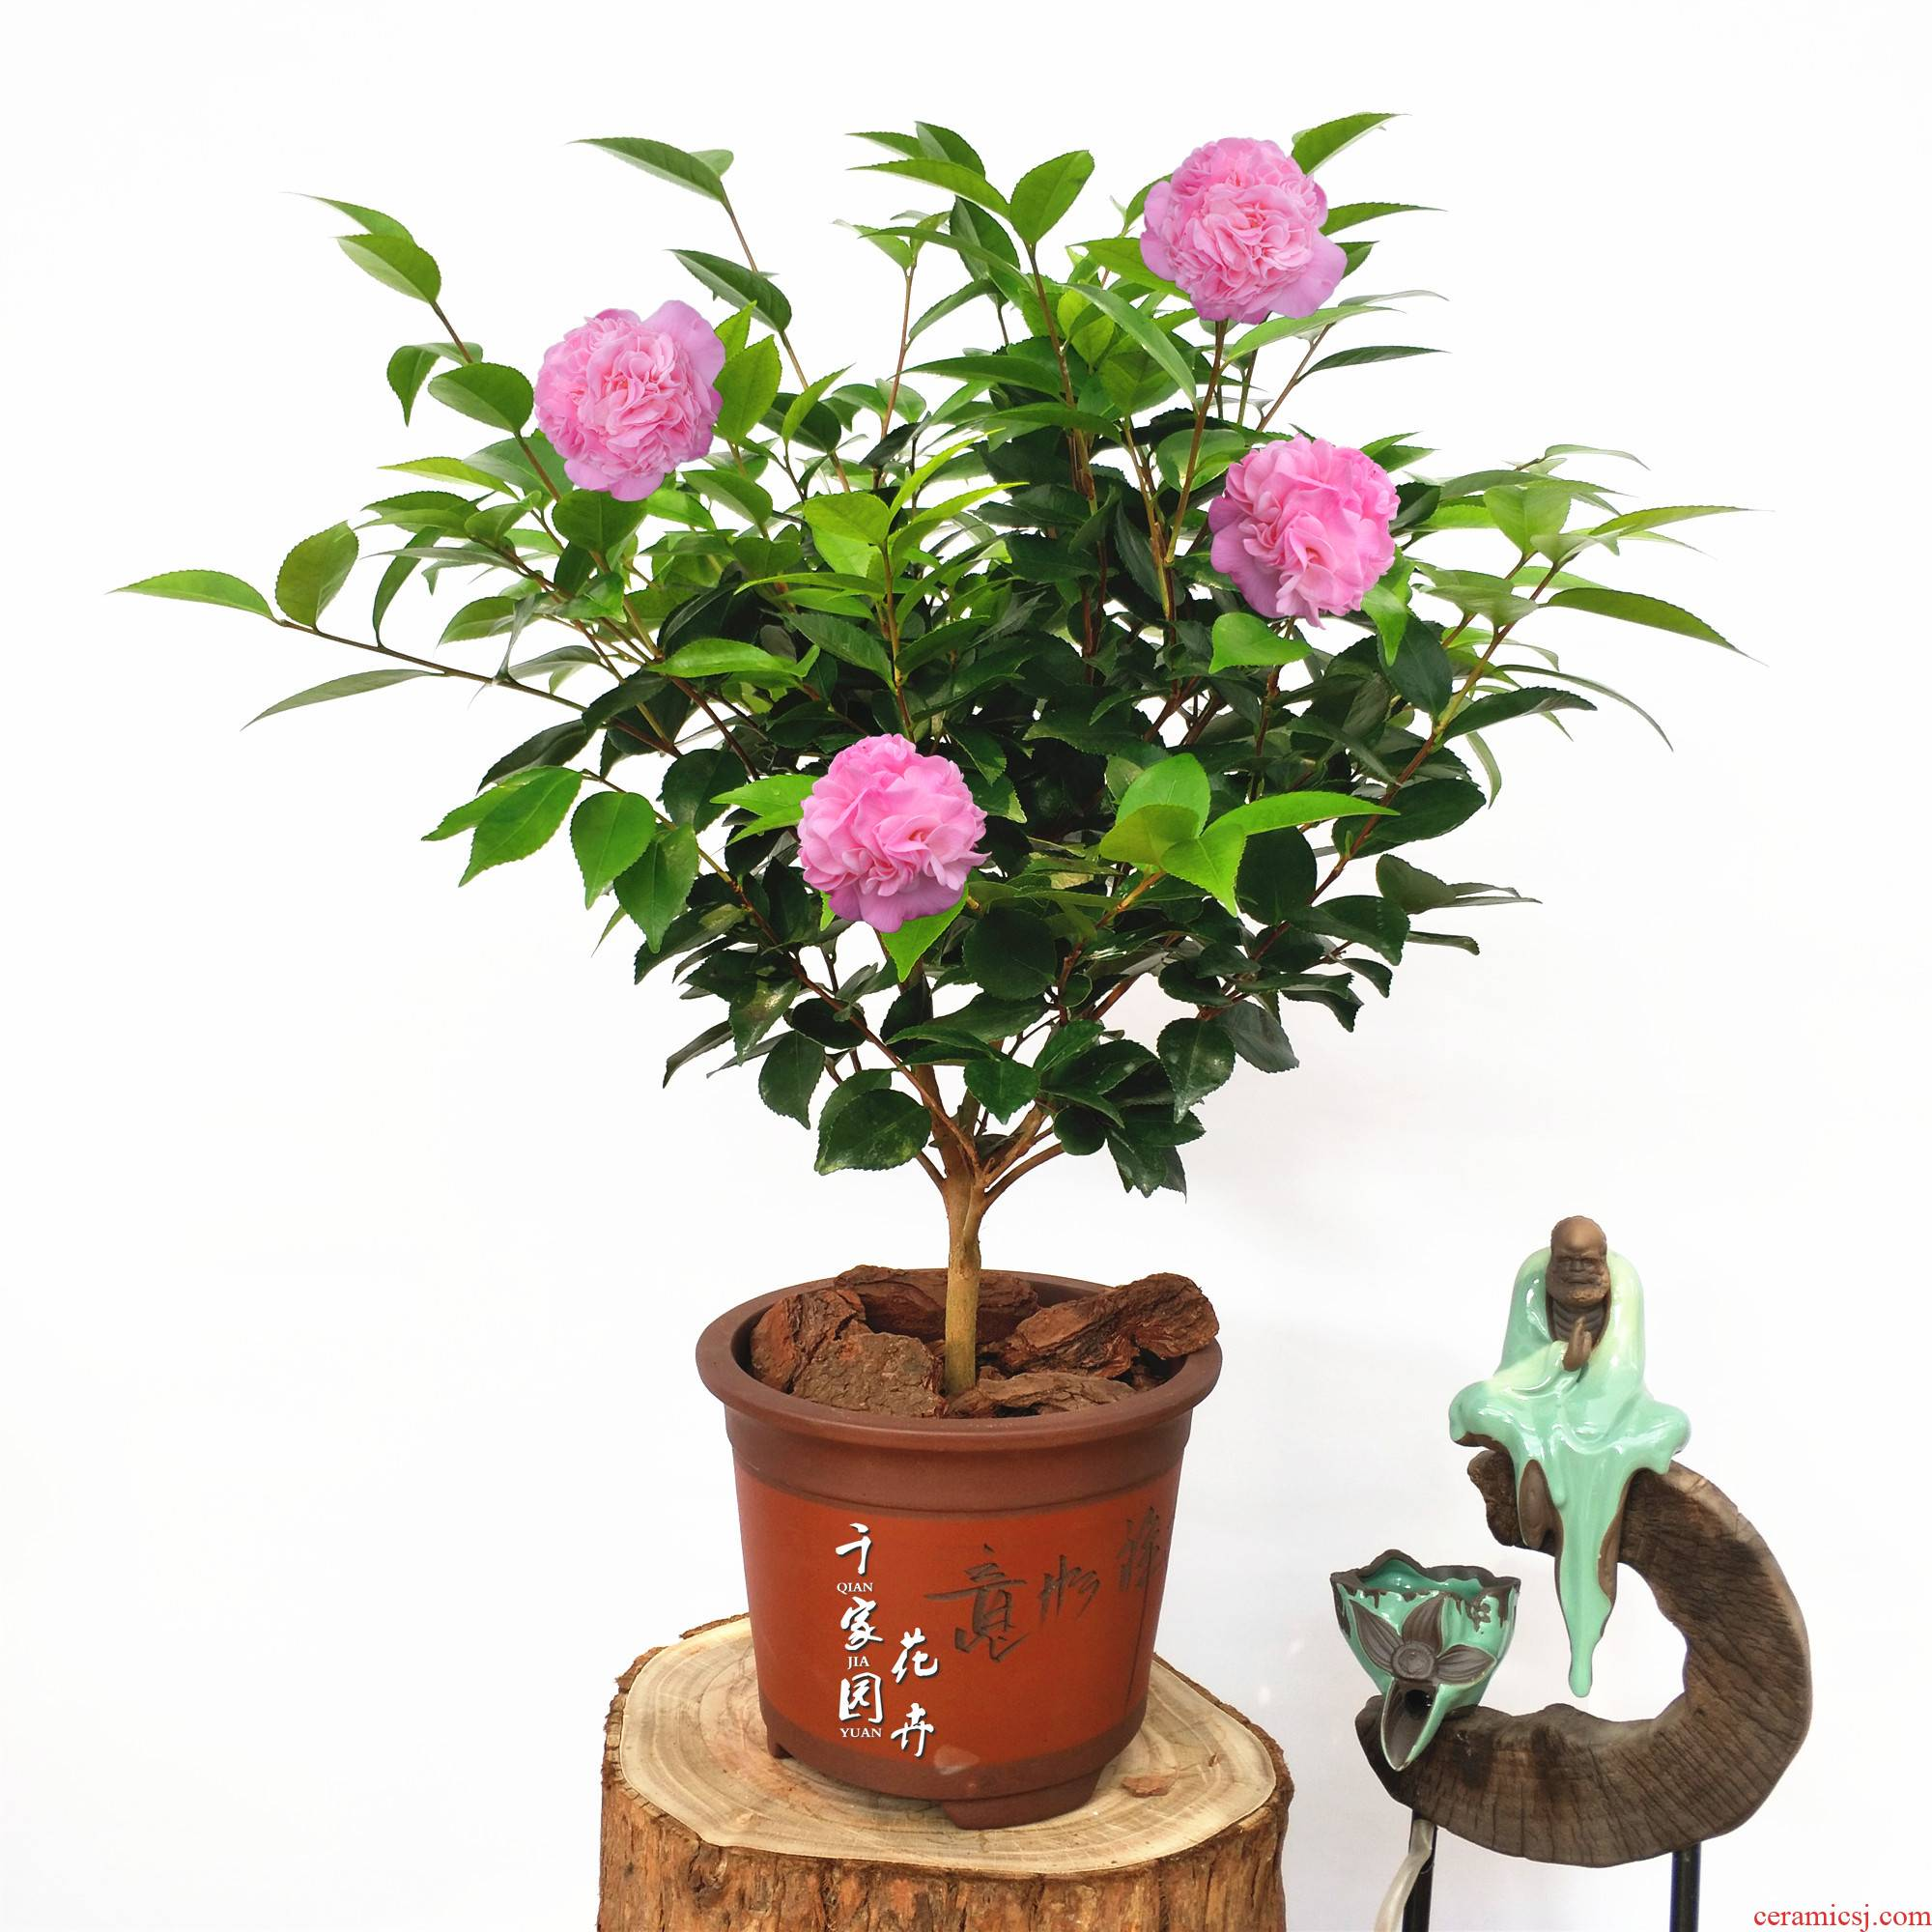 Thousands of homes fierce fragrant flowers sweet princess camellia 】 【 camellia potted seedlings luzhou - flavor, four seasons evergreen garden balcony